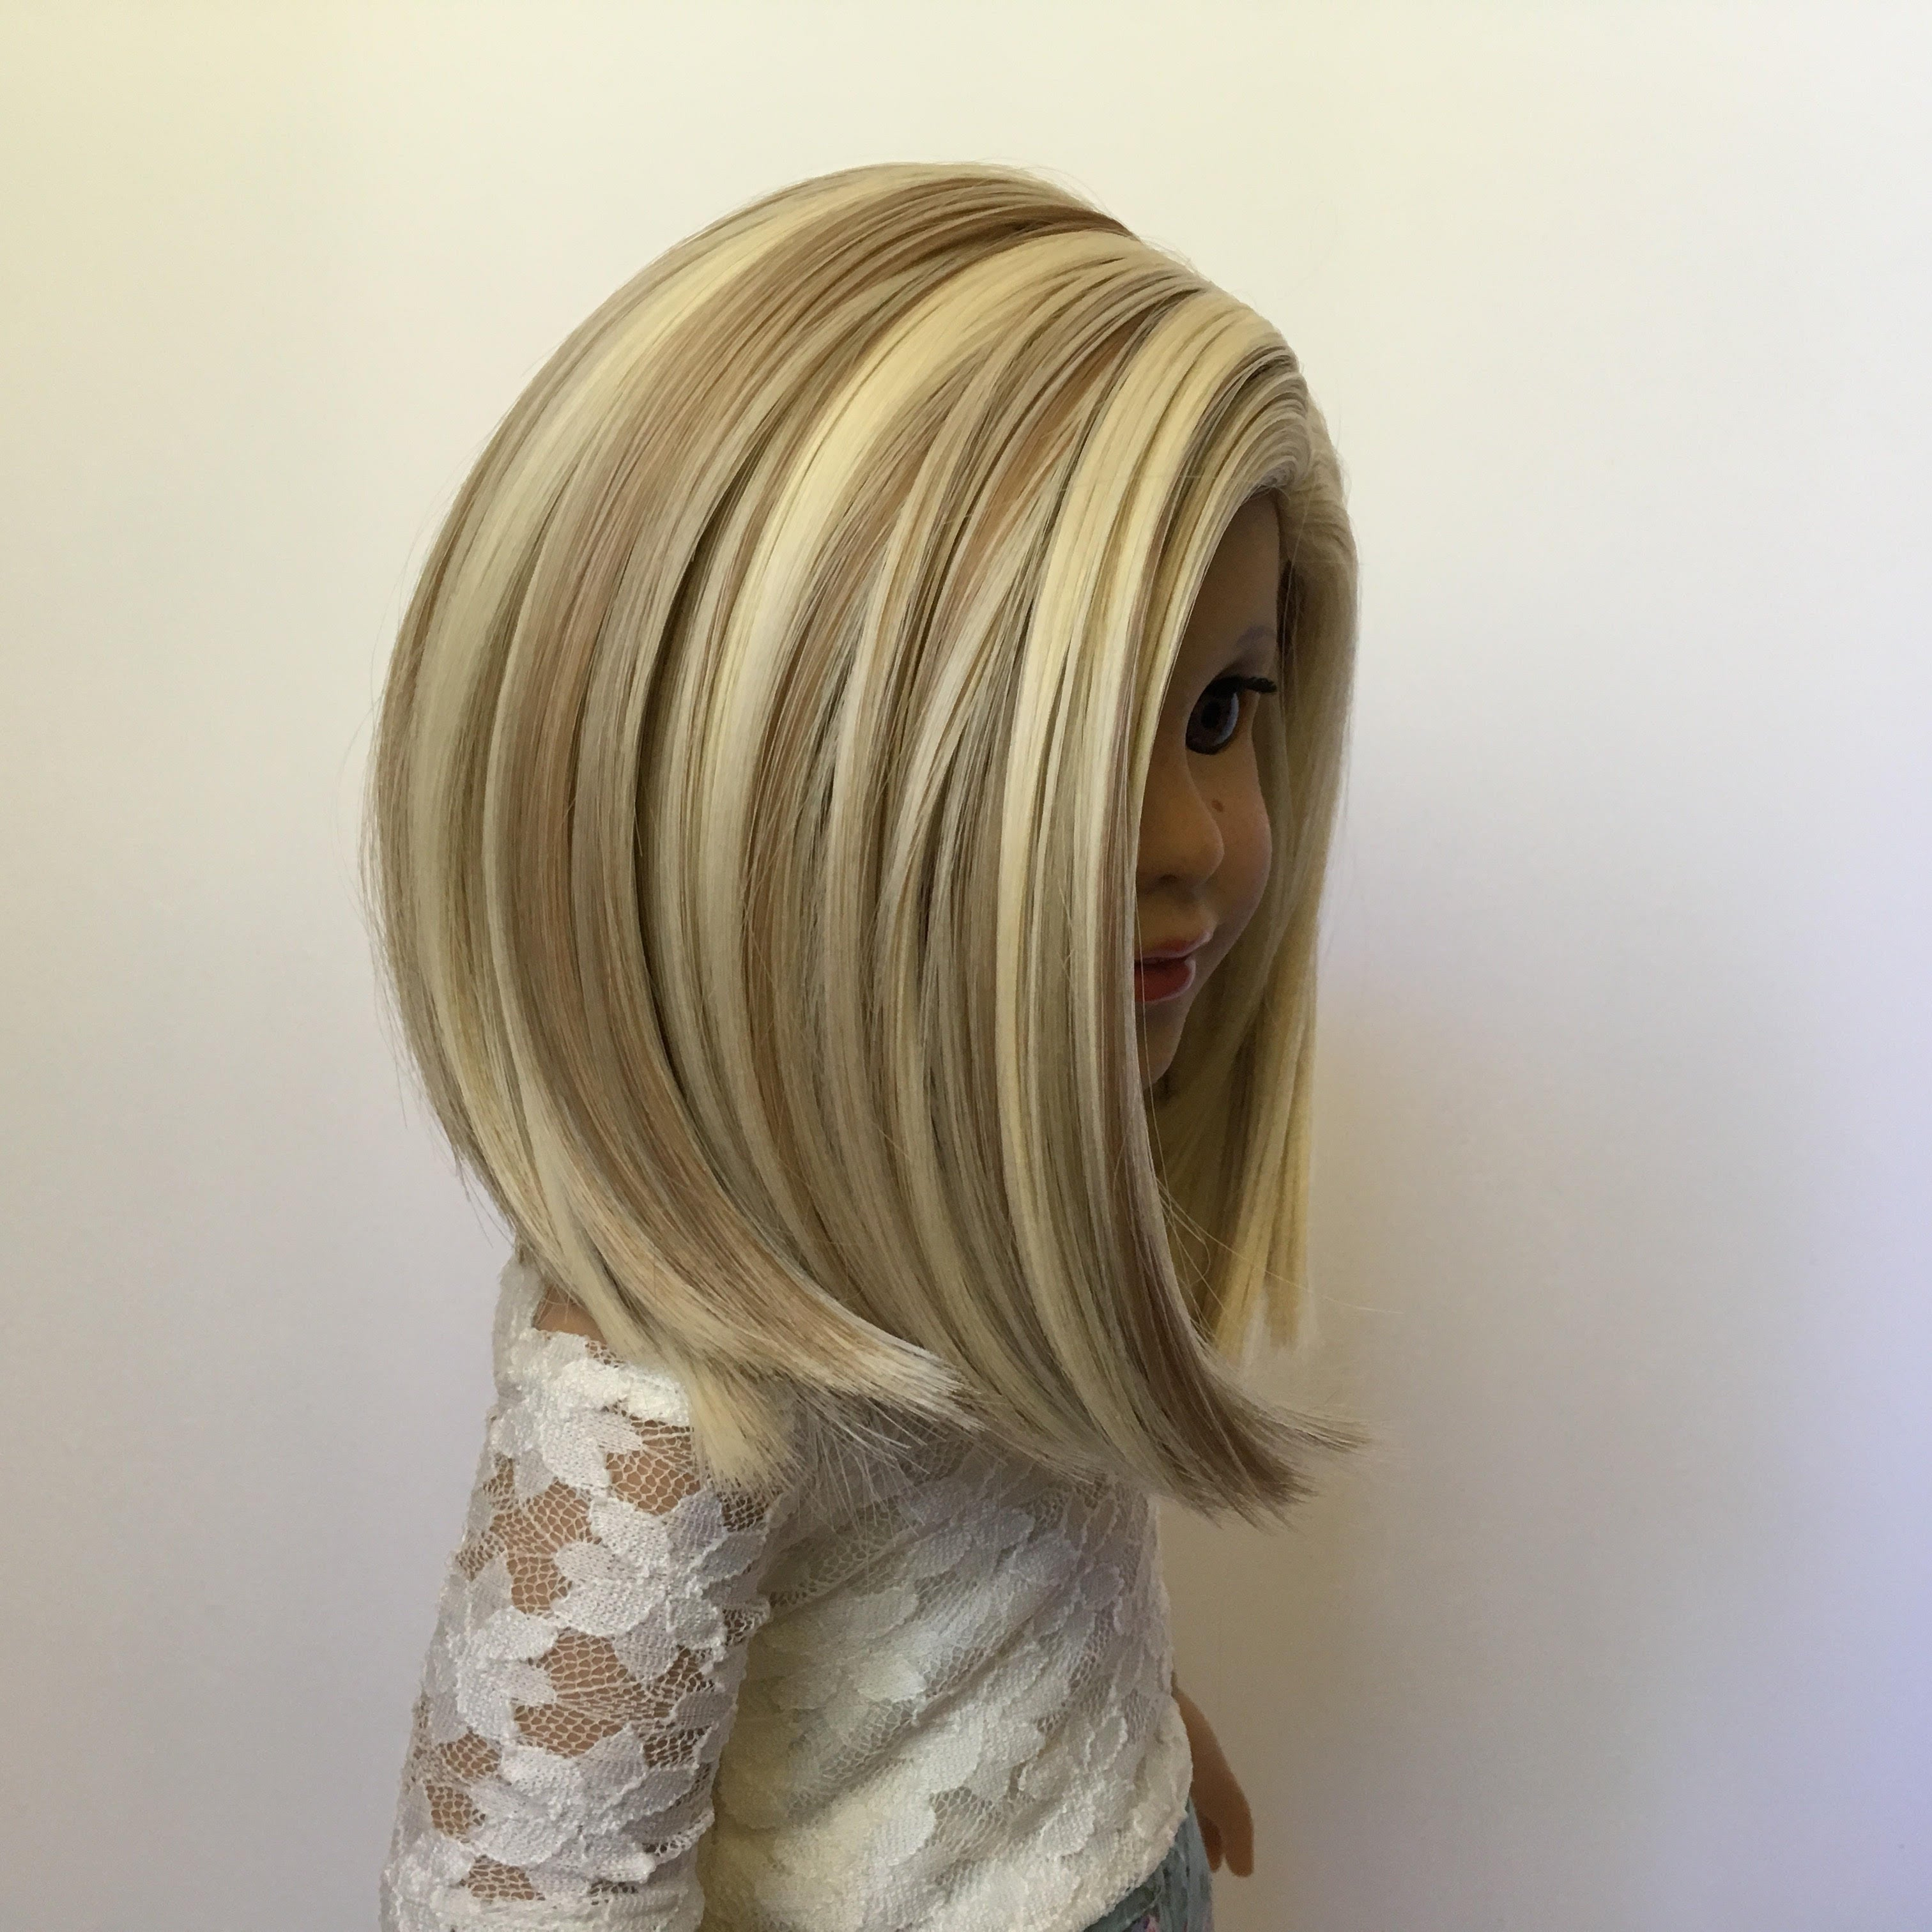 PREORDER: Zazou Dolls Exclusive WIG Malibu Blonde for 18 Inch dolls such as Journey and American Girl